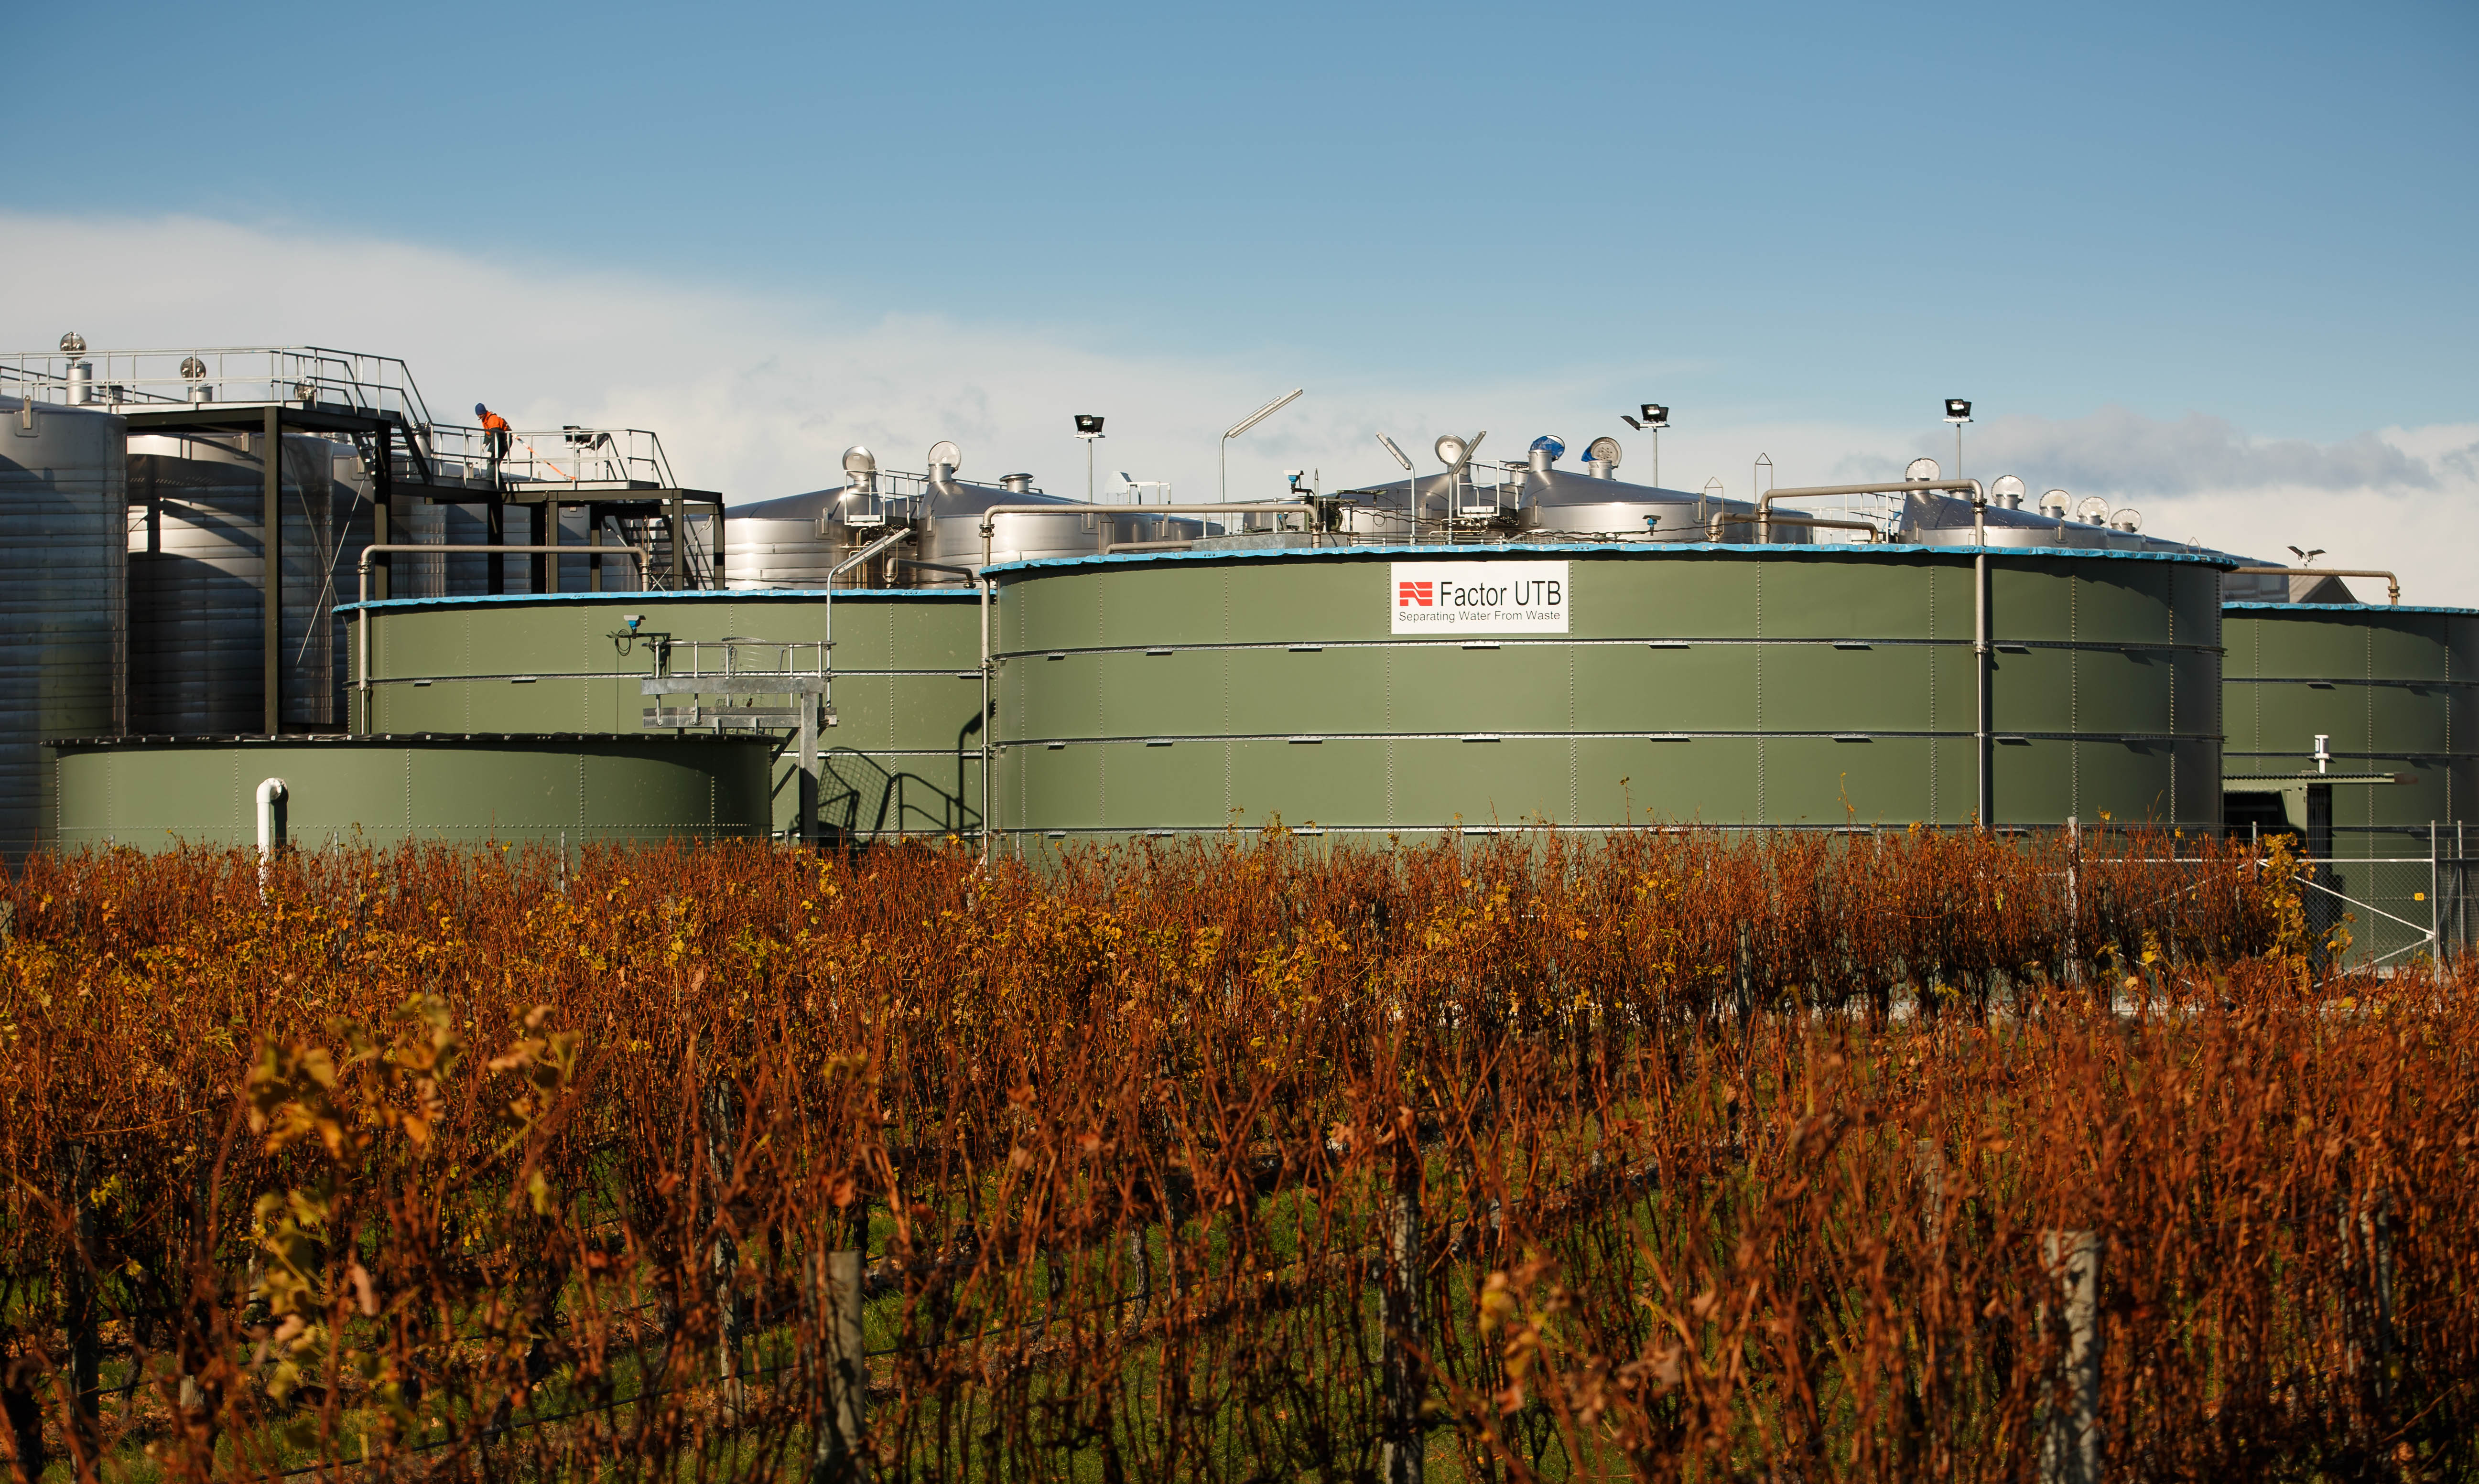 Wine Manufacturers Companies In Australia Mail: Australian Winery Uses Internet Of Things To Wage War On